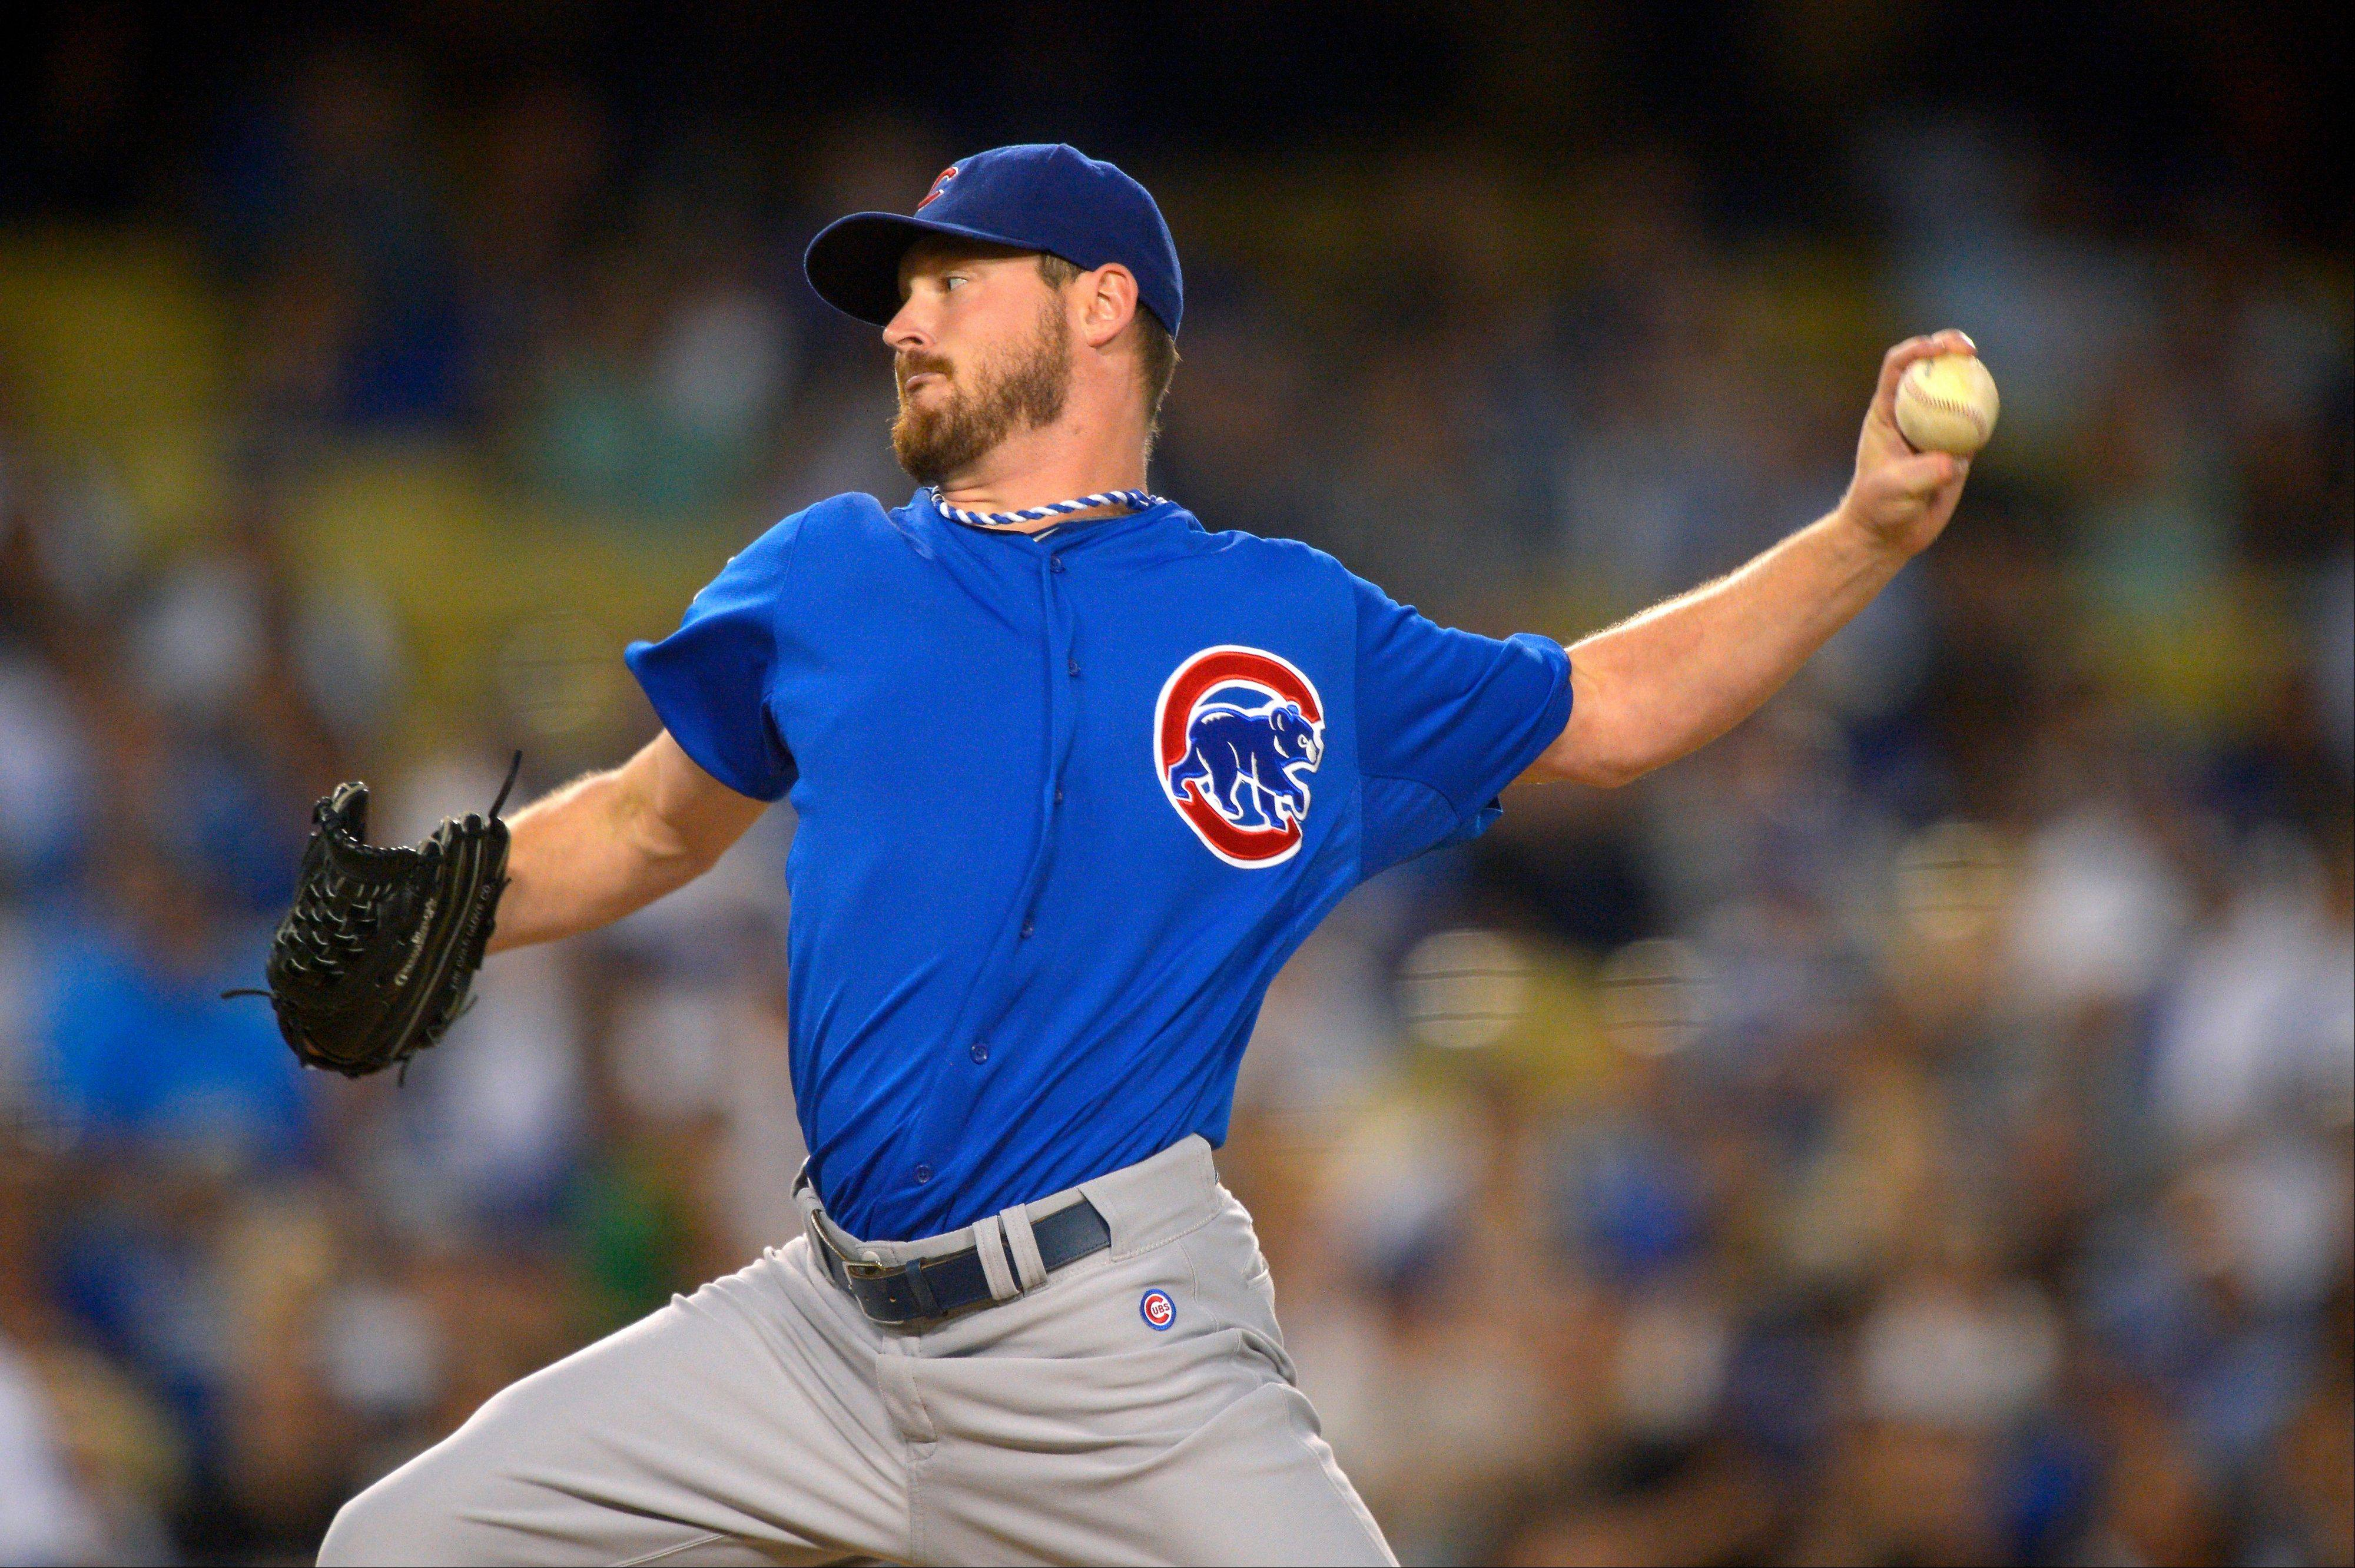 The Cubs� starting pitcher Travis Wood outpitched Clayton Kershaw Tuesday night as the Cubs beat the Dodgers 3-2 in Los Angeles.